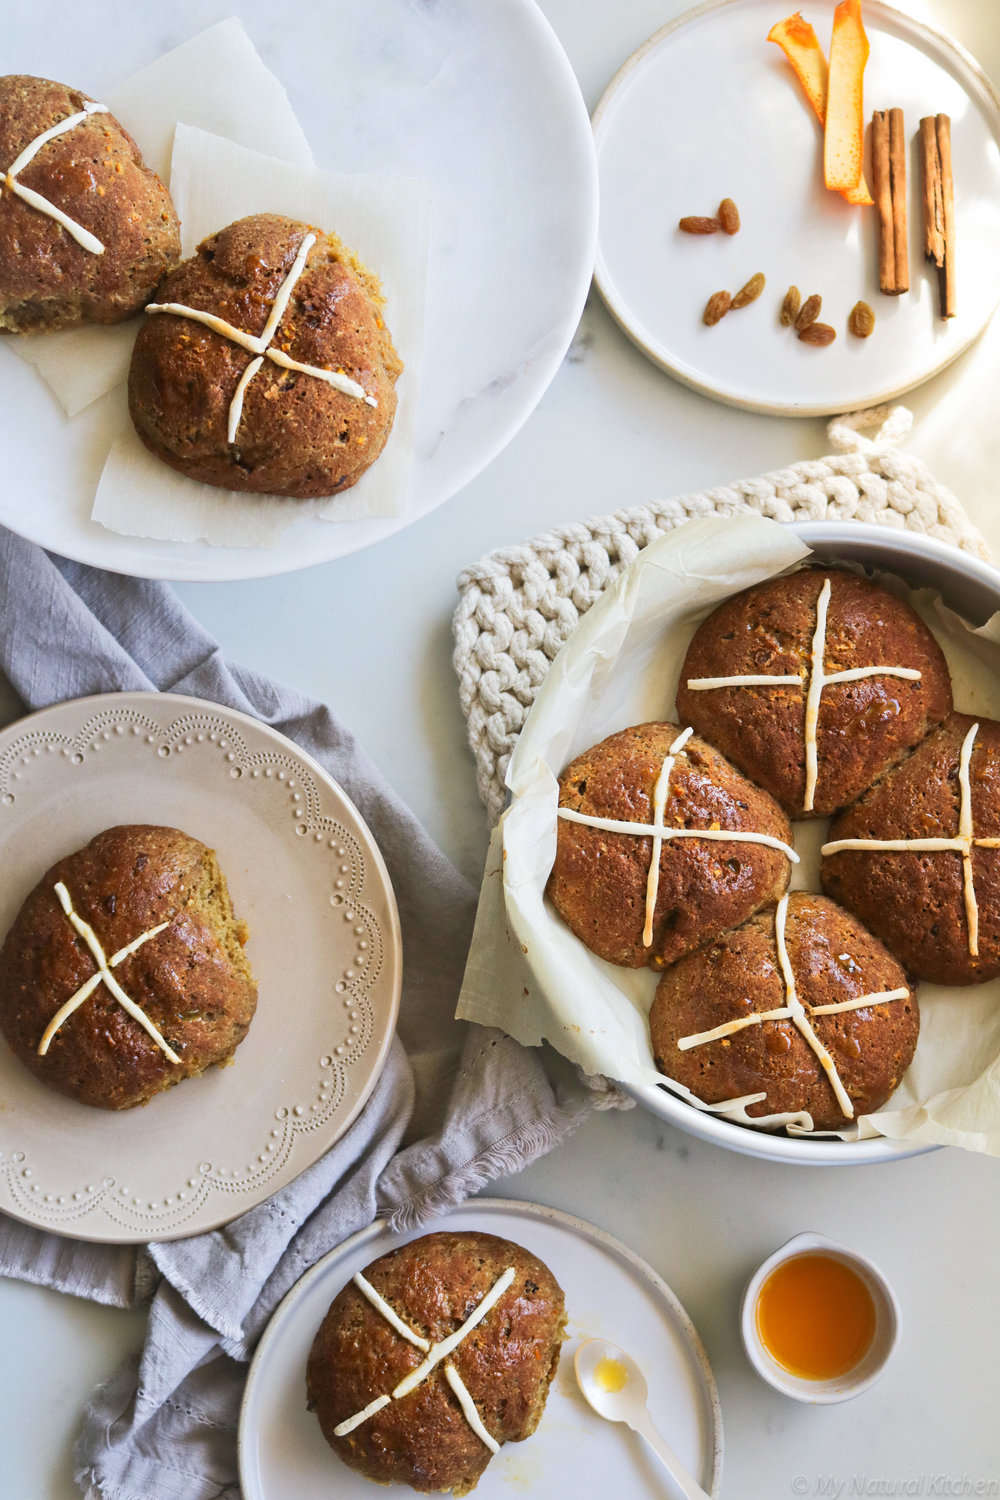 Gluten Free Hot Cross Buns by My Natural Kitchen #glutenfree #vegan #dairyfree #mynaturalkitchen